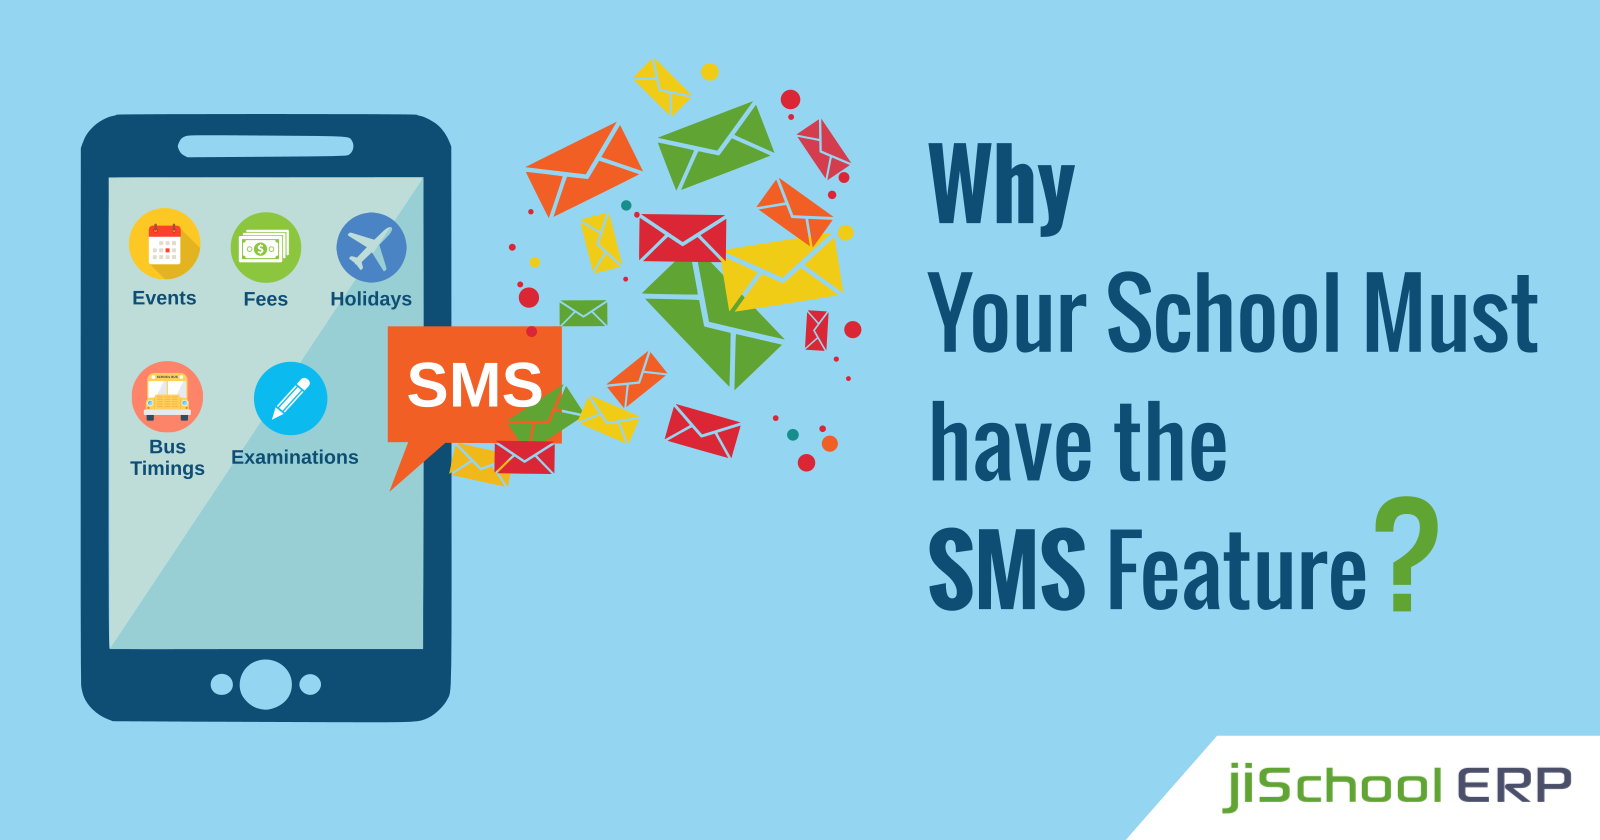 Why Your School Must Have the SMS Feature